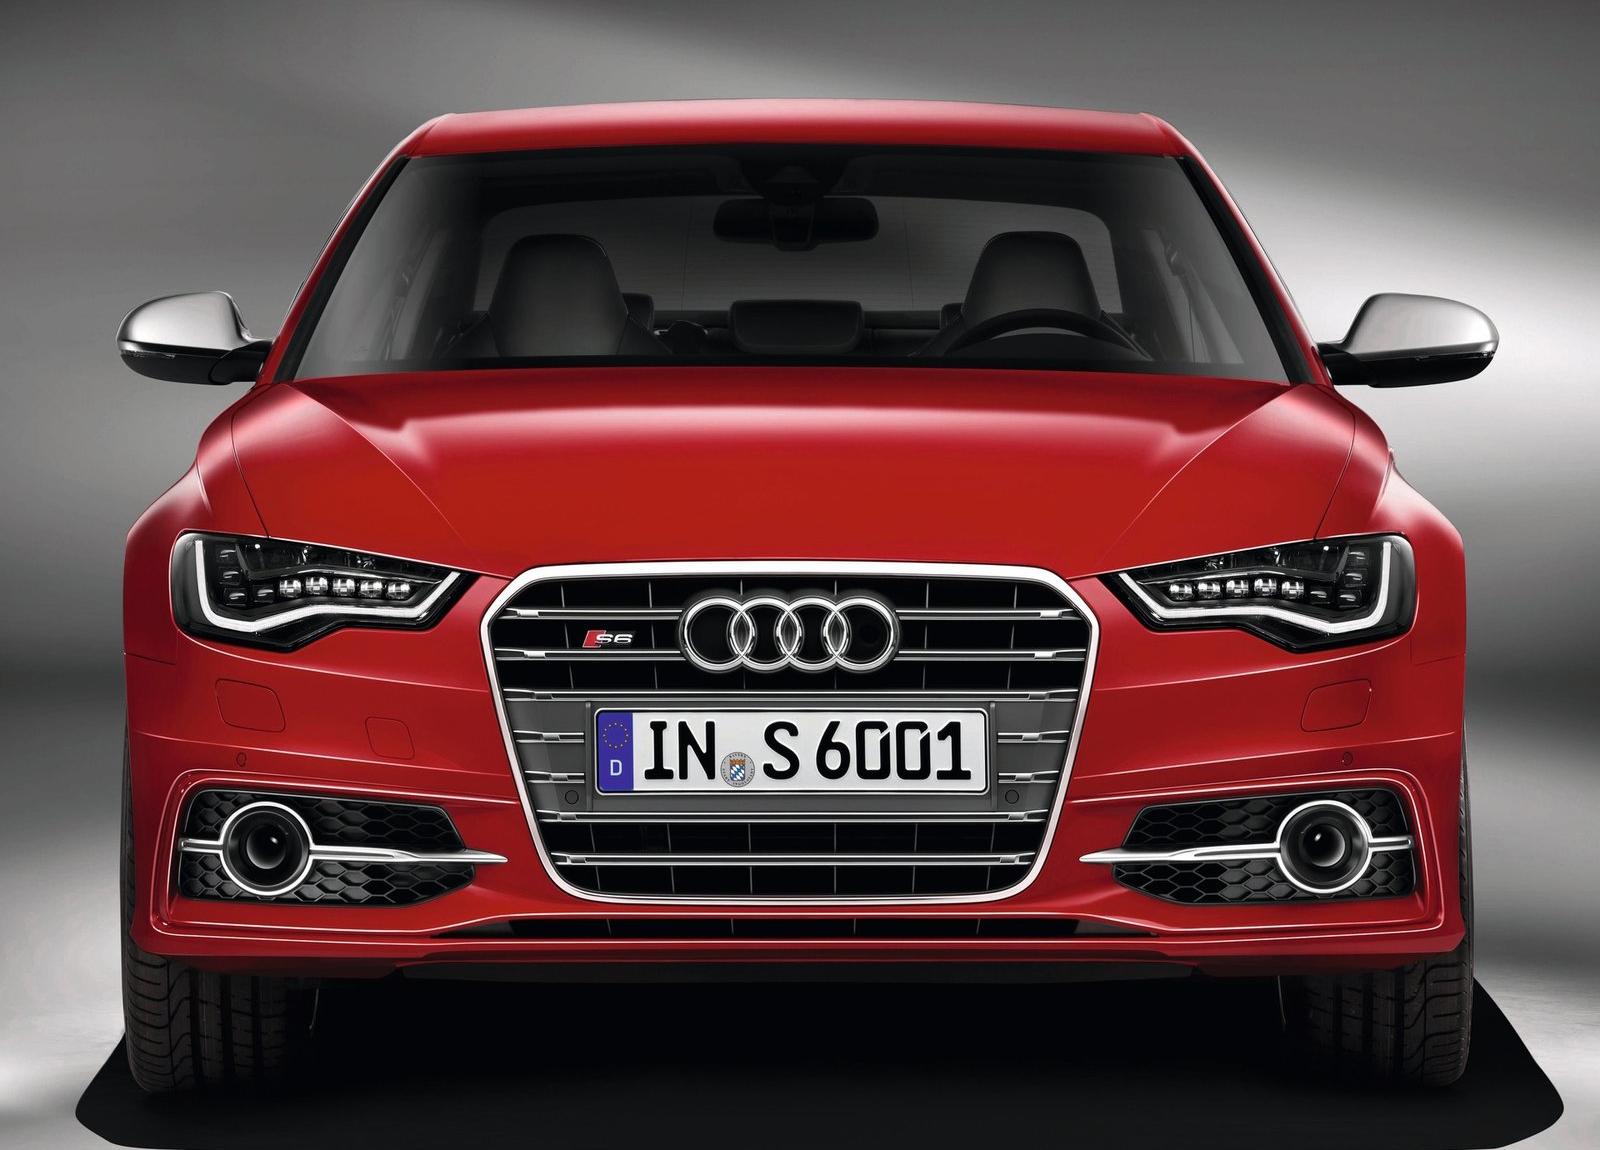 2013 audi s6 hd wallpapers the world of audi. Black Bedroom Furniture Sets. Home Design Ideas